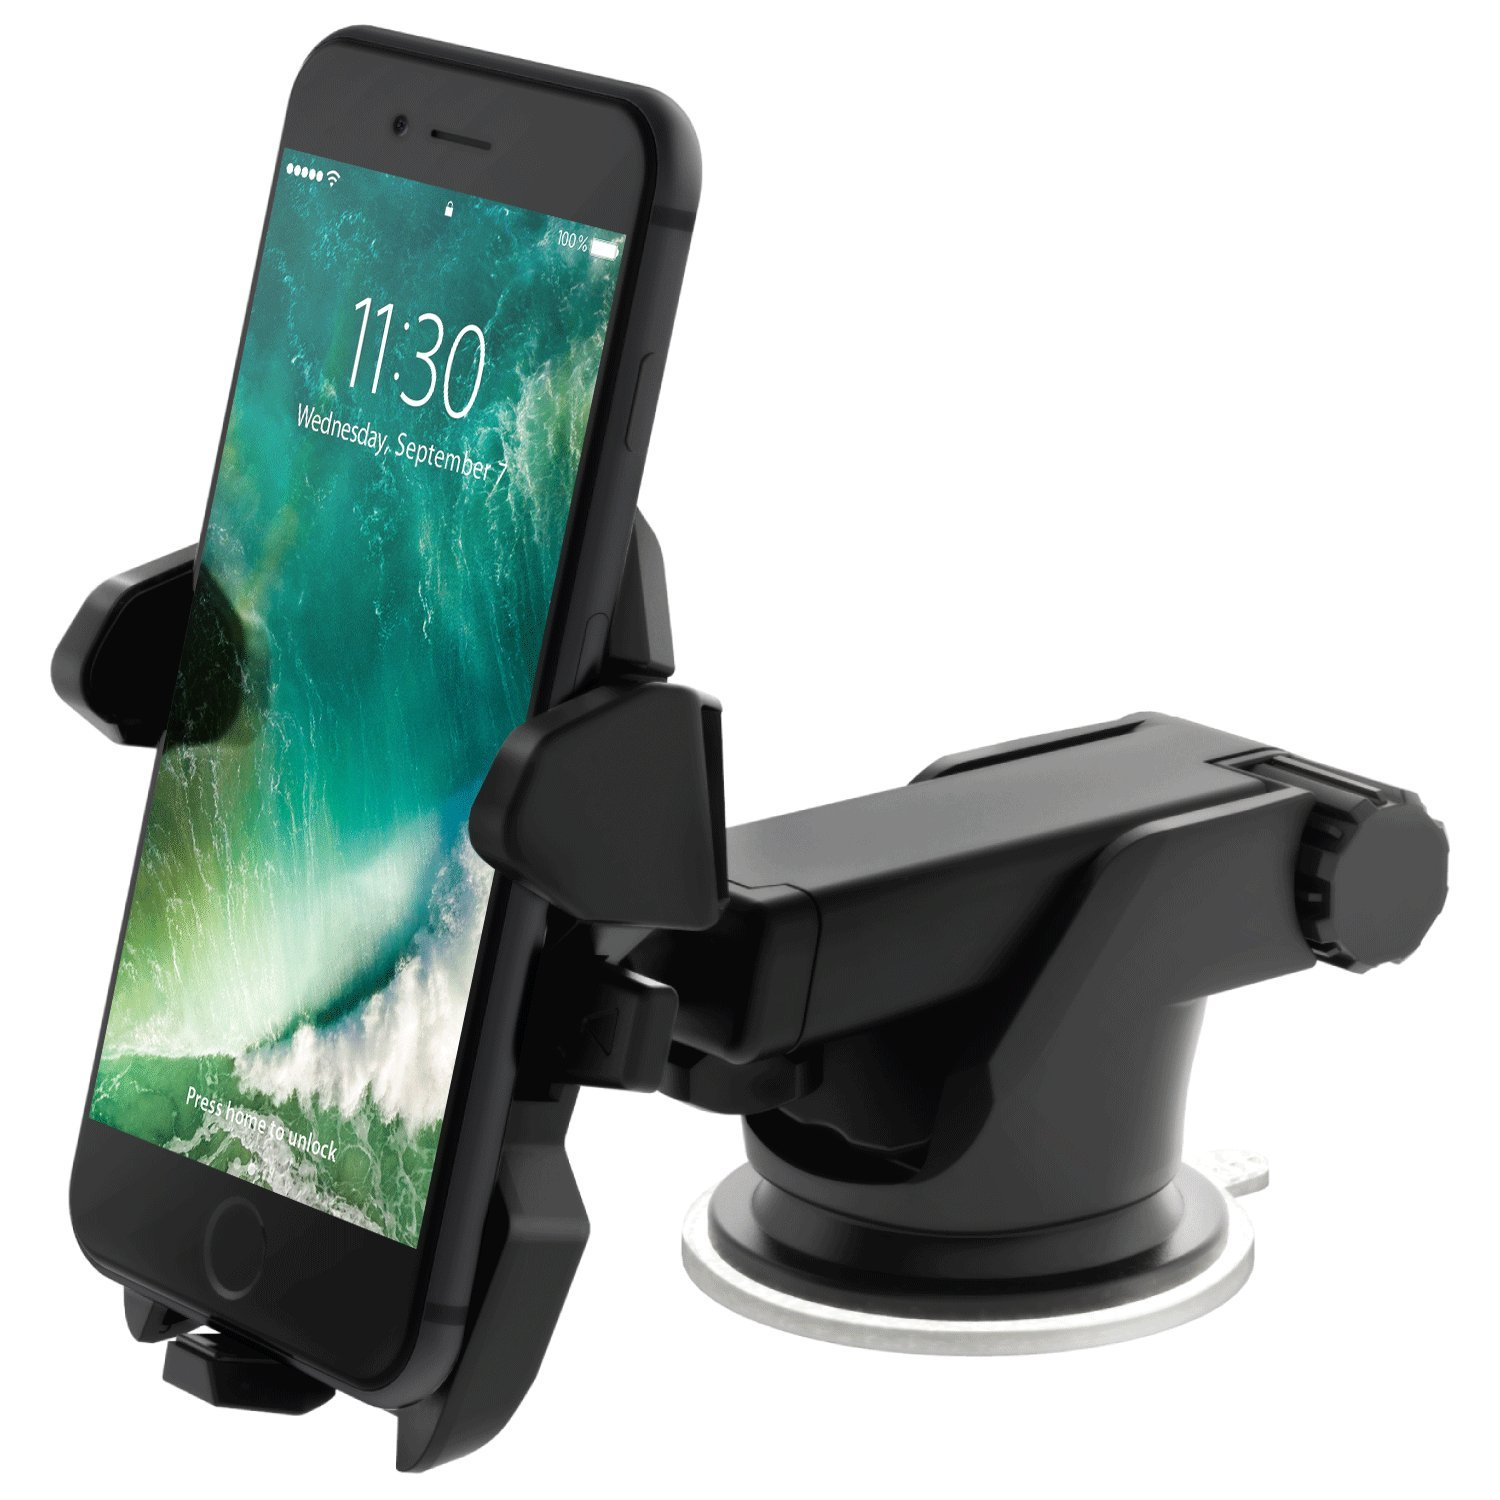 iOttie Easy One Touch 2 Car Mount Holder Universal Phone Compatible with iPhone XS Max R 8/8 Plus 7 7 Plus 6s Plus 6s 6 SE Samsung Galaxy S8 Plus S8 Edge S7 S6 Note 9 by iOttie